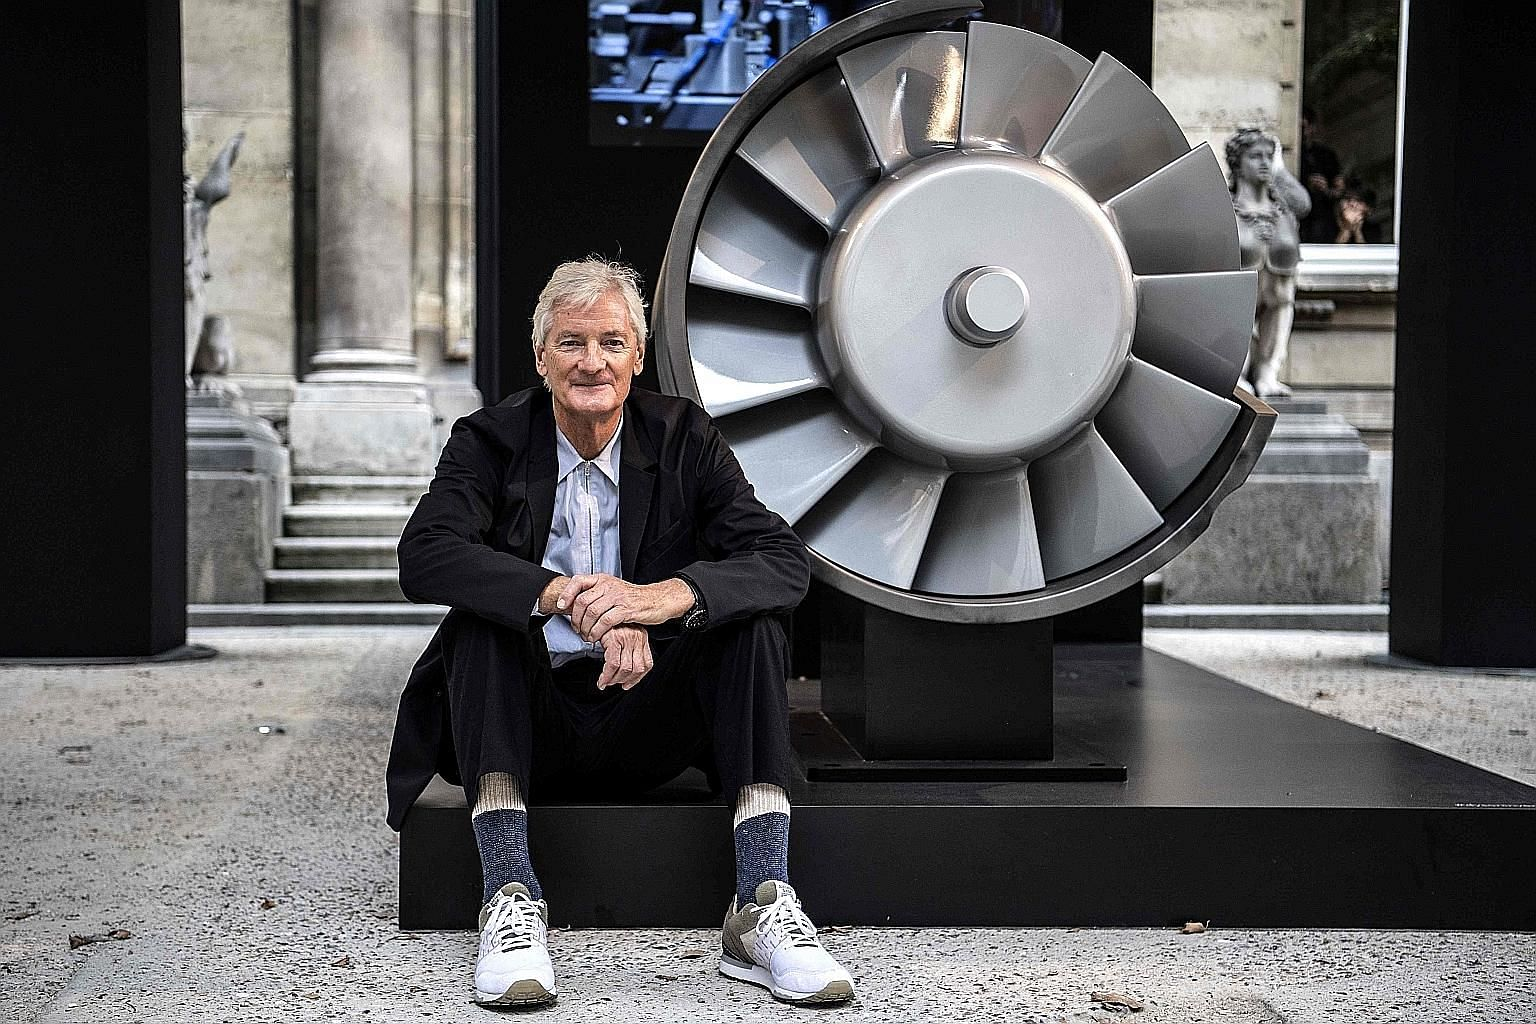 Dyson's billionaire founder, Sir James Dyson, was one of the key voices from the business world who backed the campaign for Britain to leave the EU.